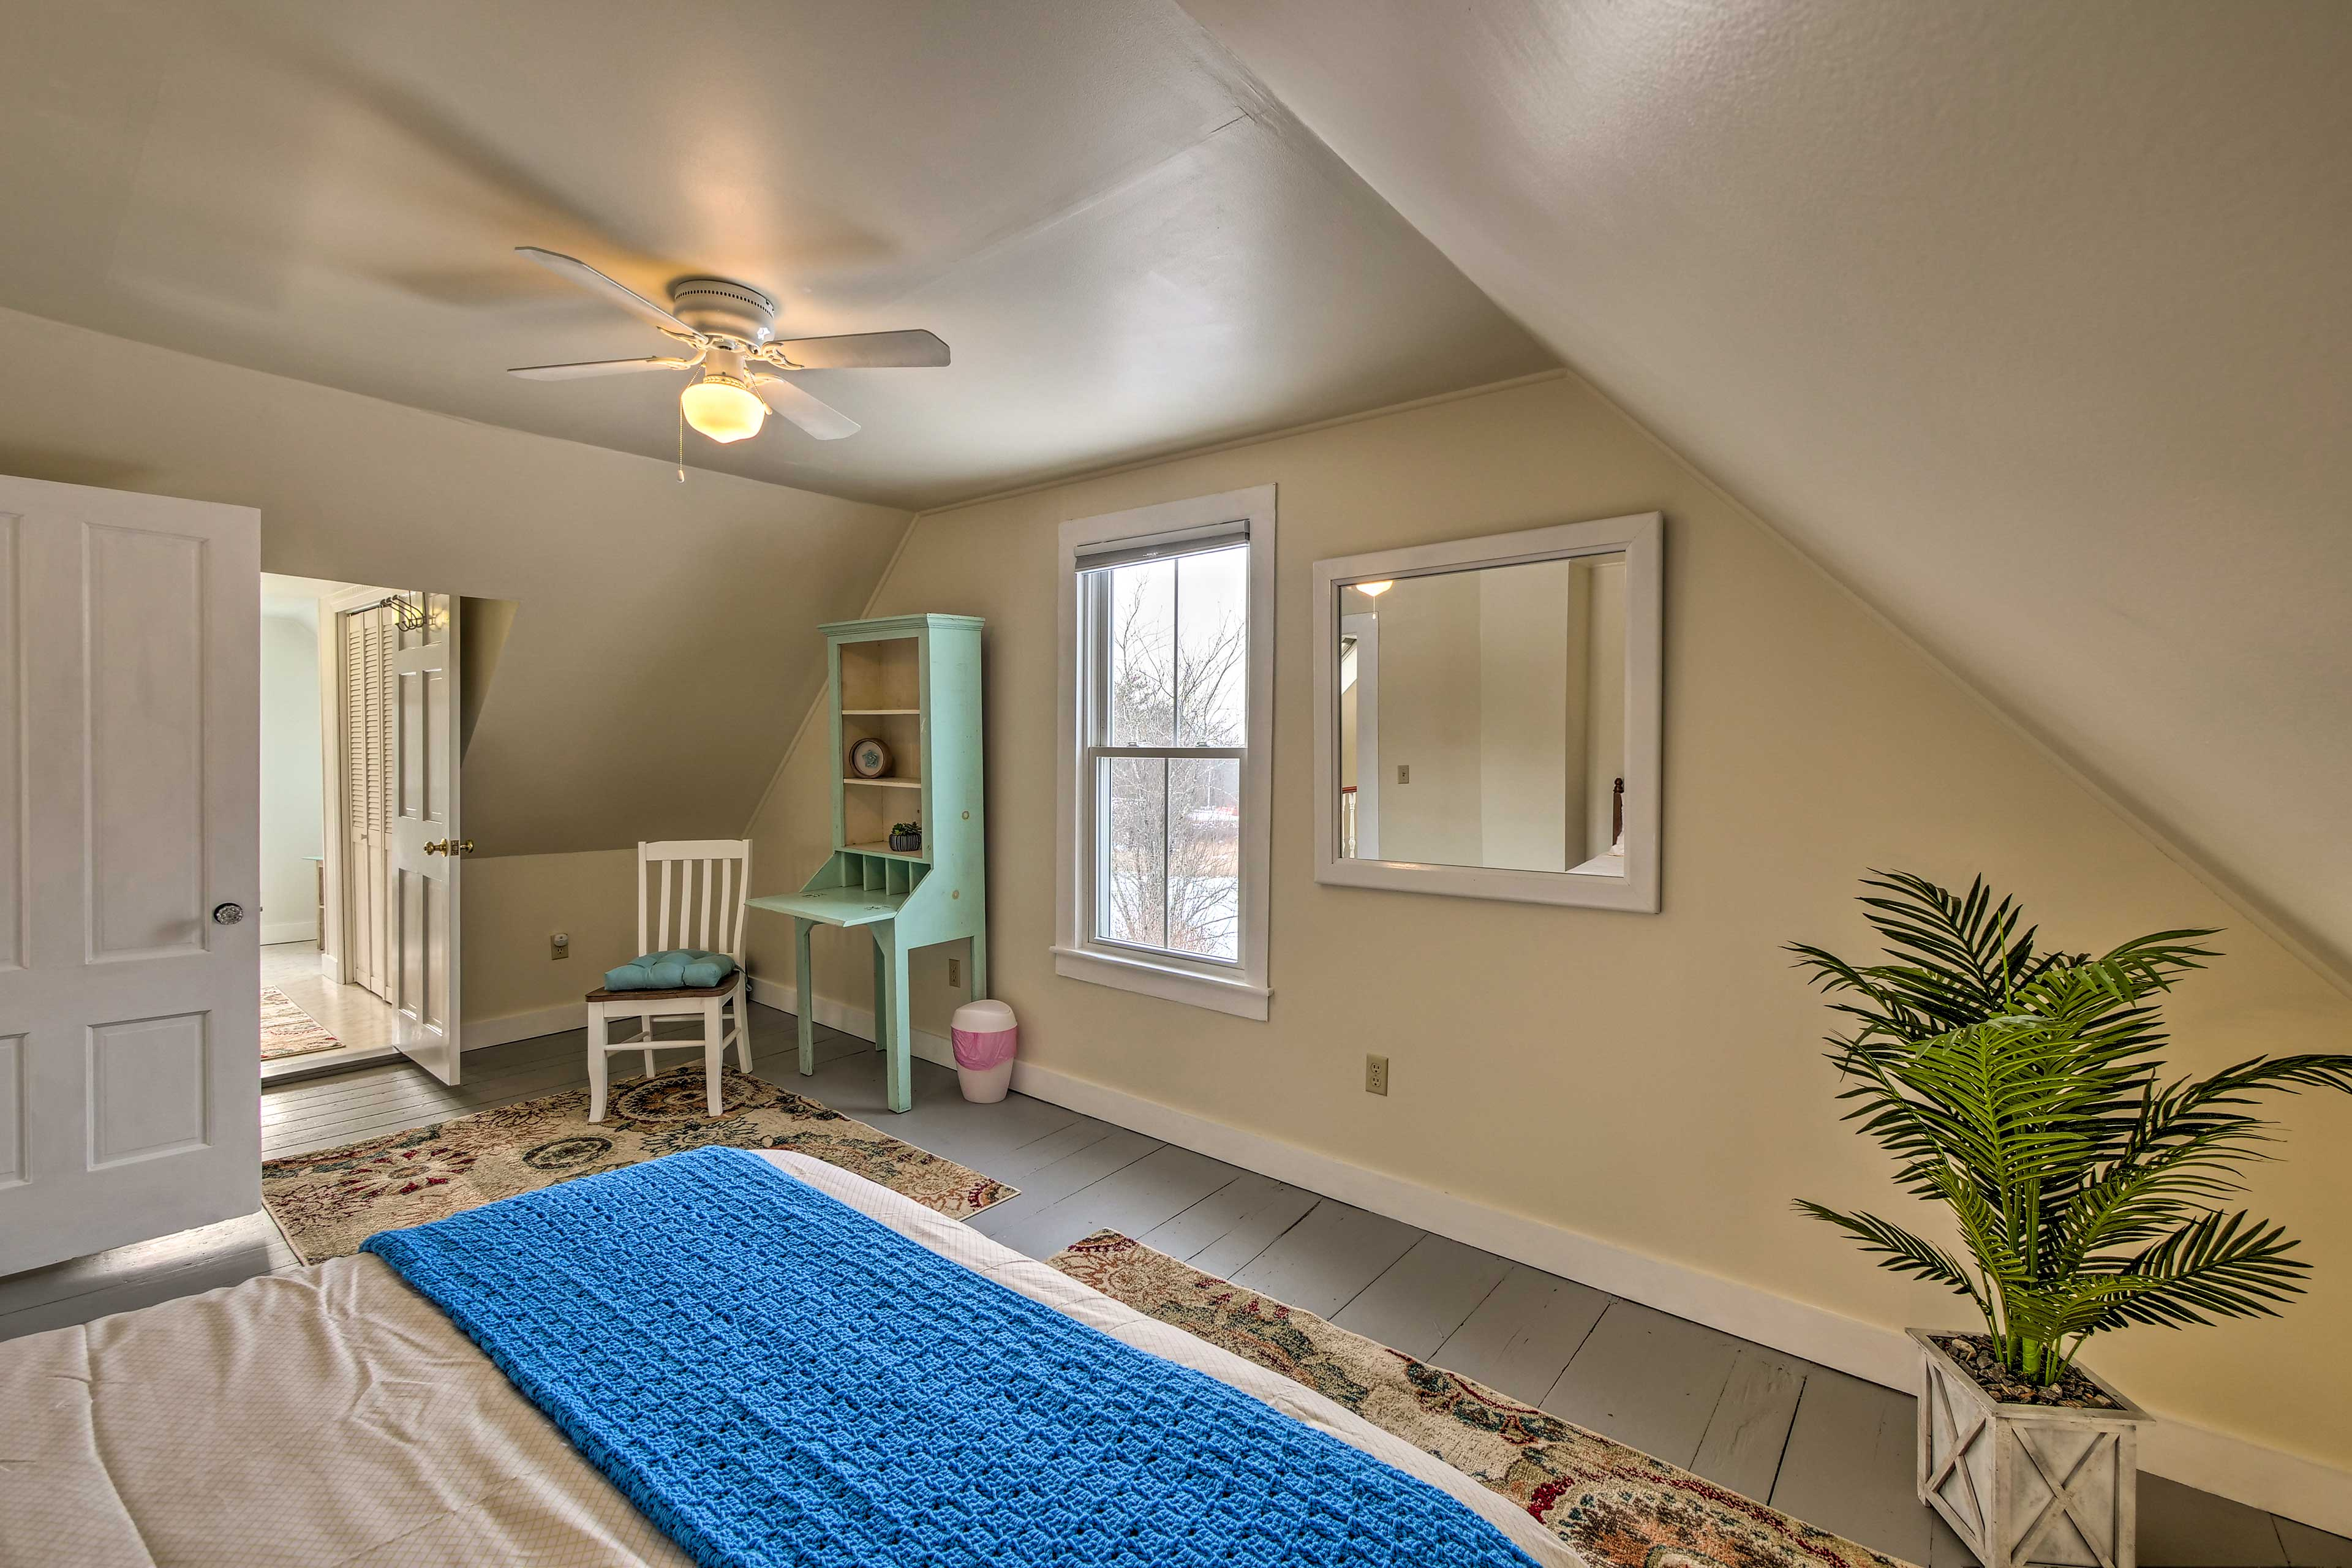 The master bedroom features a queen bed for 2 guests to sleep in.